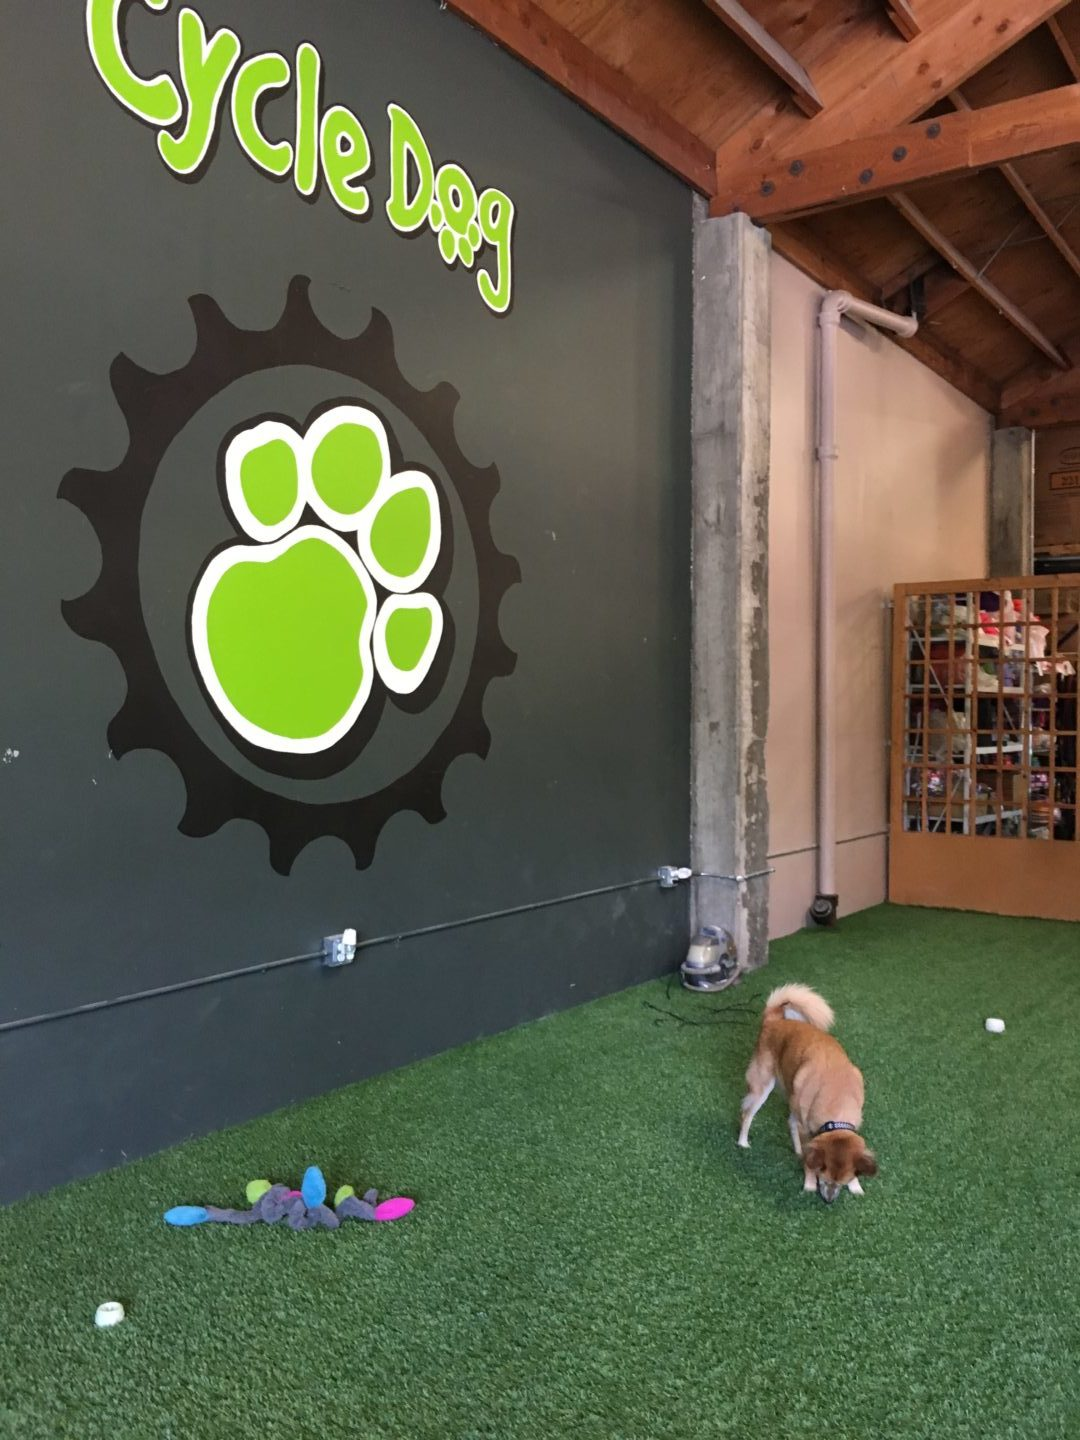 Clem enjoys a visit to dog gear store Cycle Dog in Portland, OR.